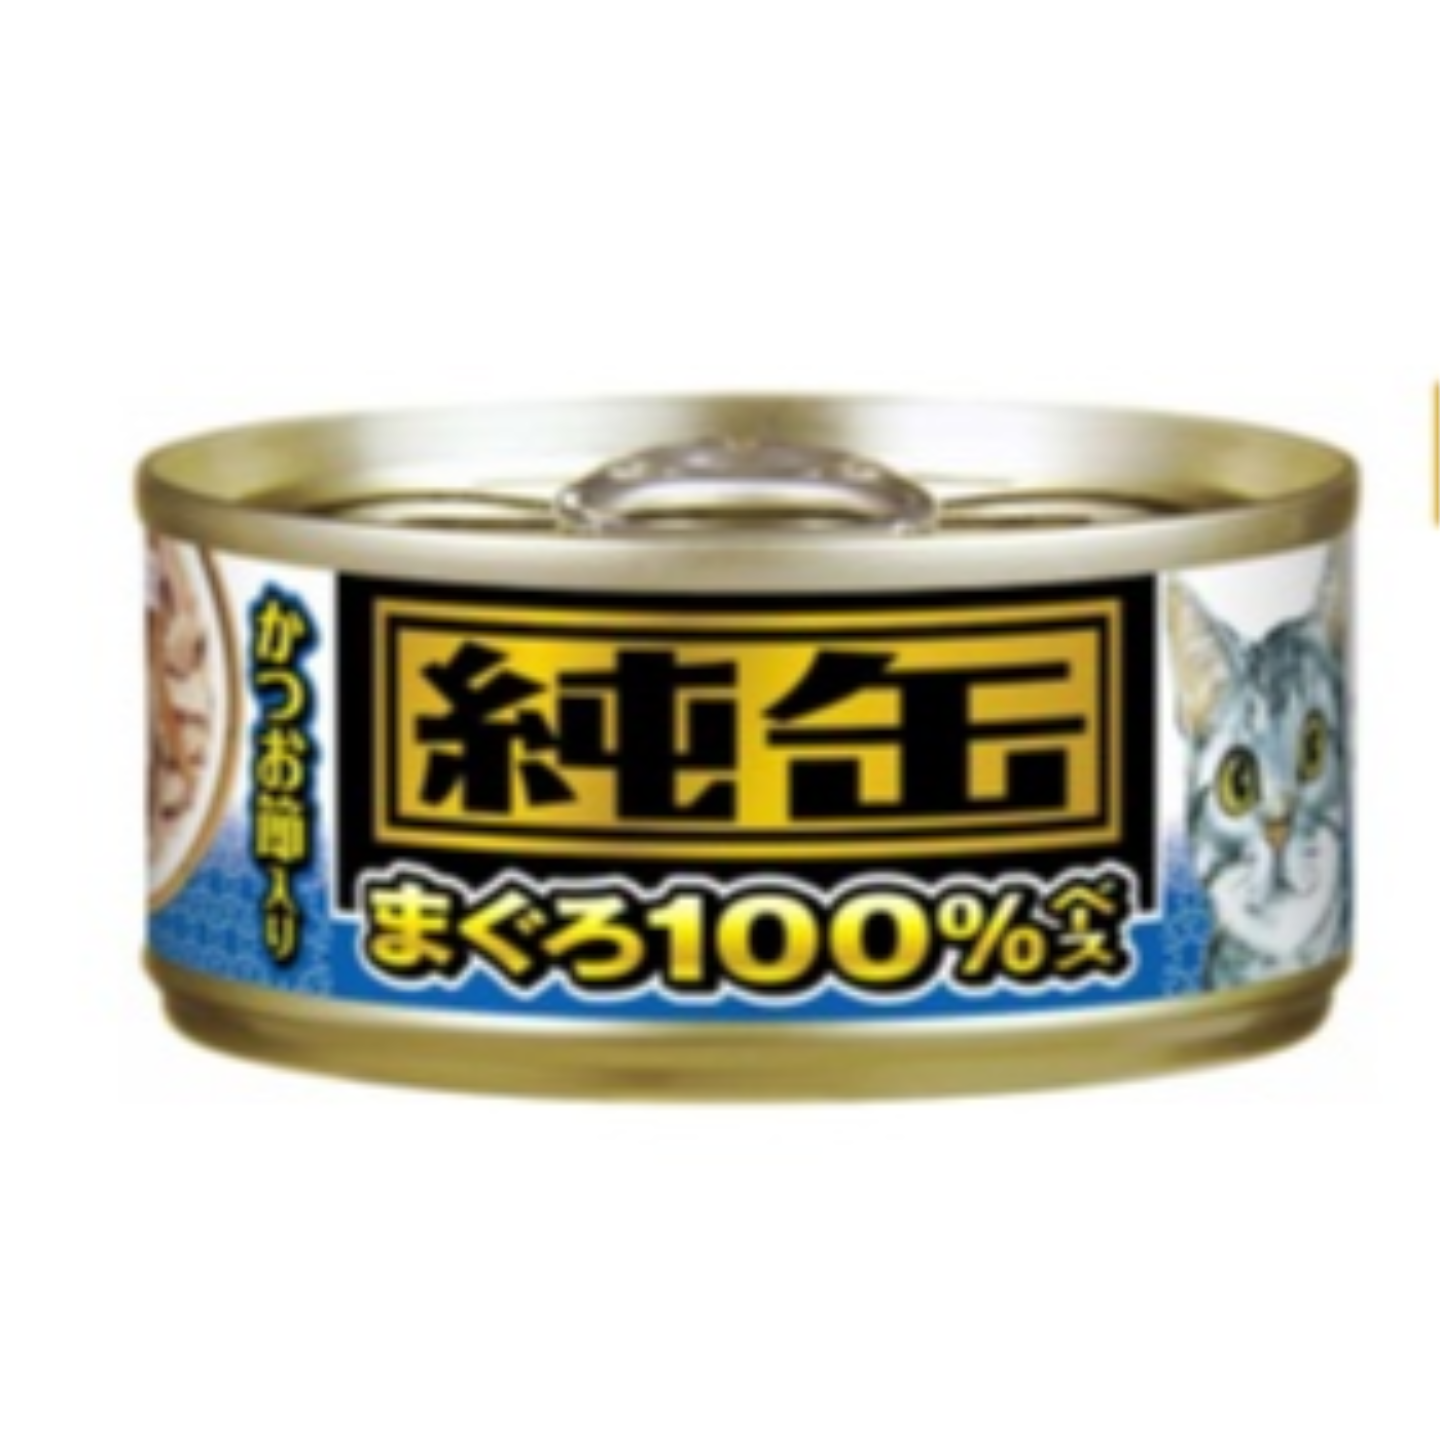 Aixia JUN-CAN MINI - 100 TUNA + TOPPING - 65G  24 CANS Per Set